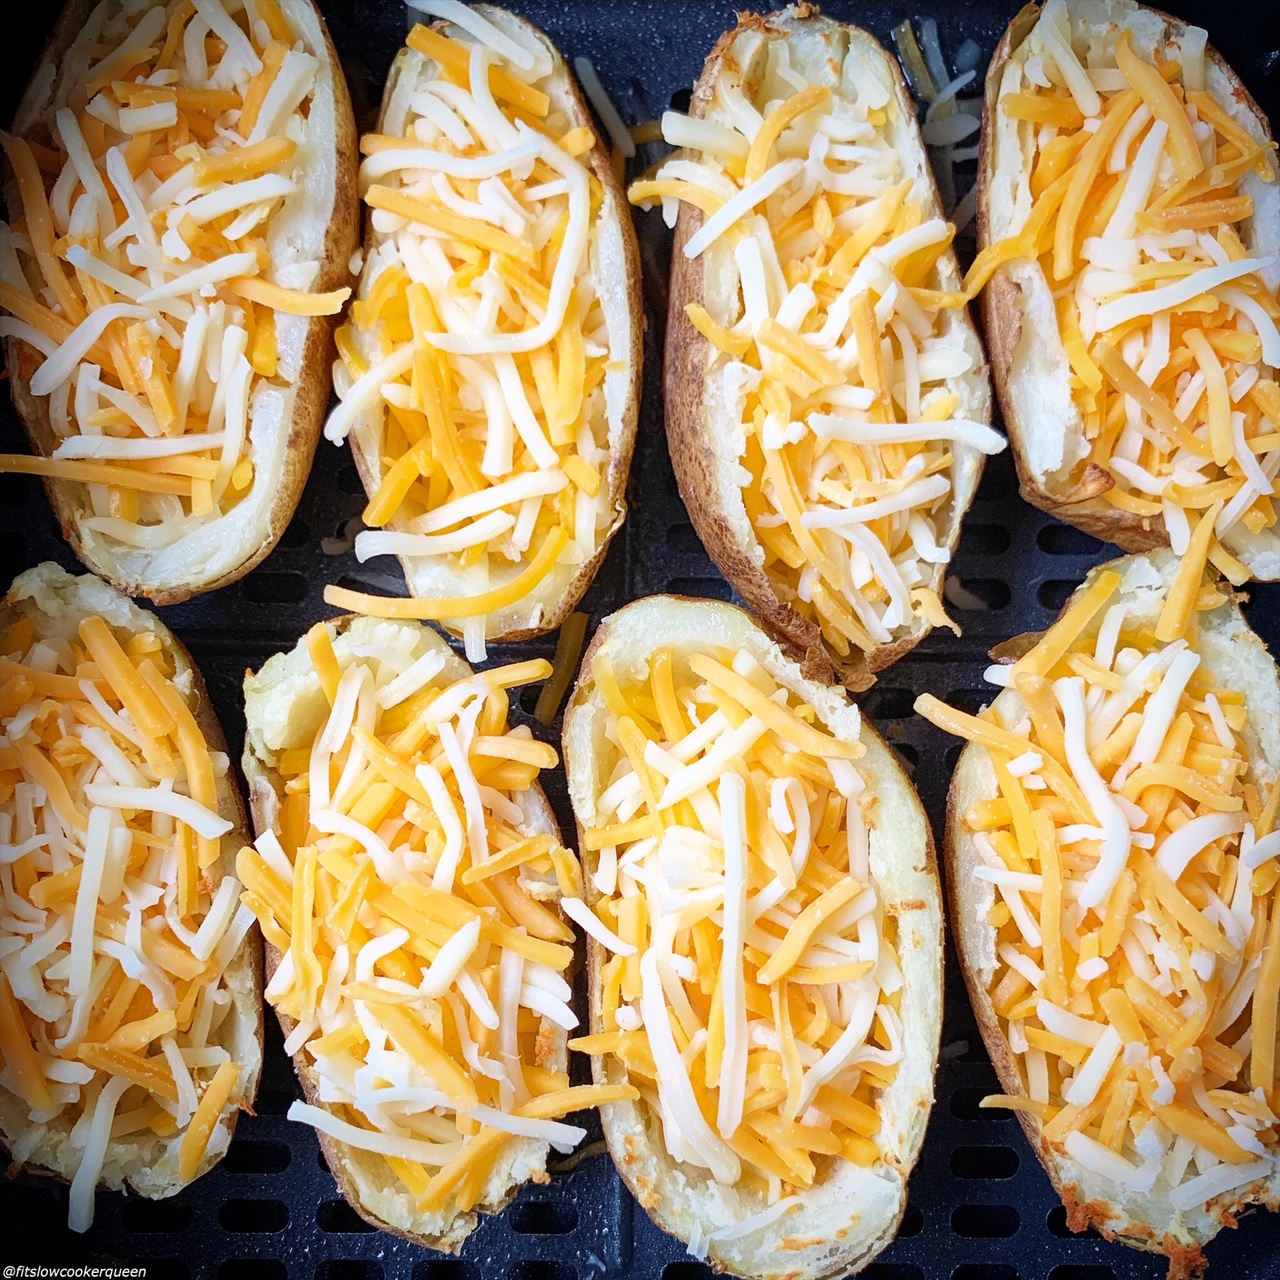 cheese added to potato skins before cooking